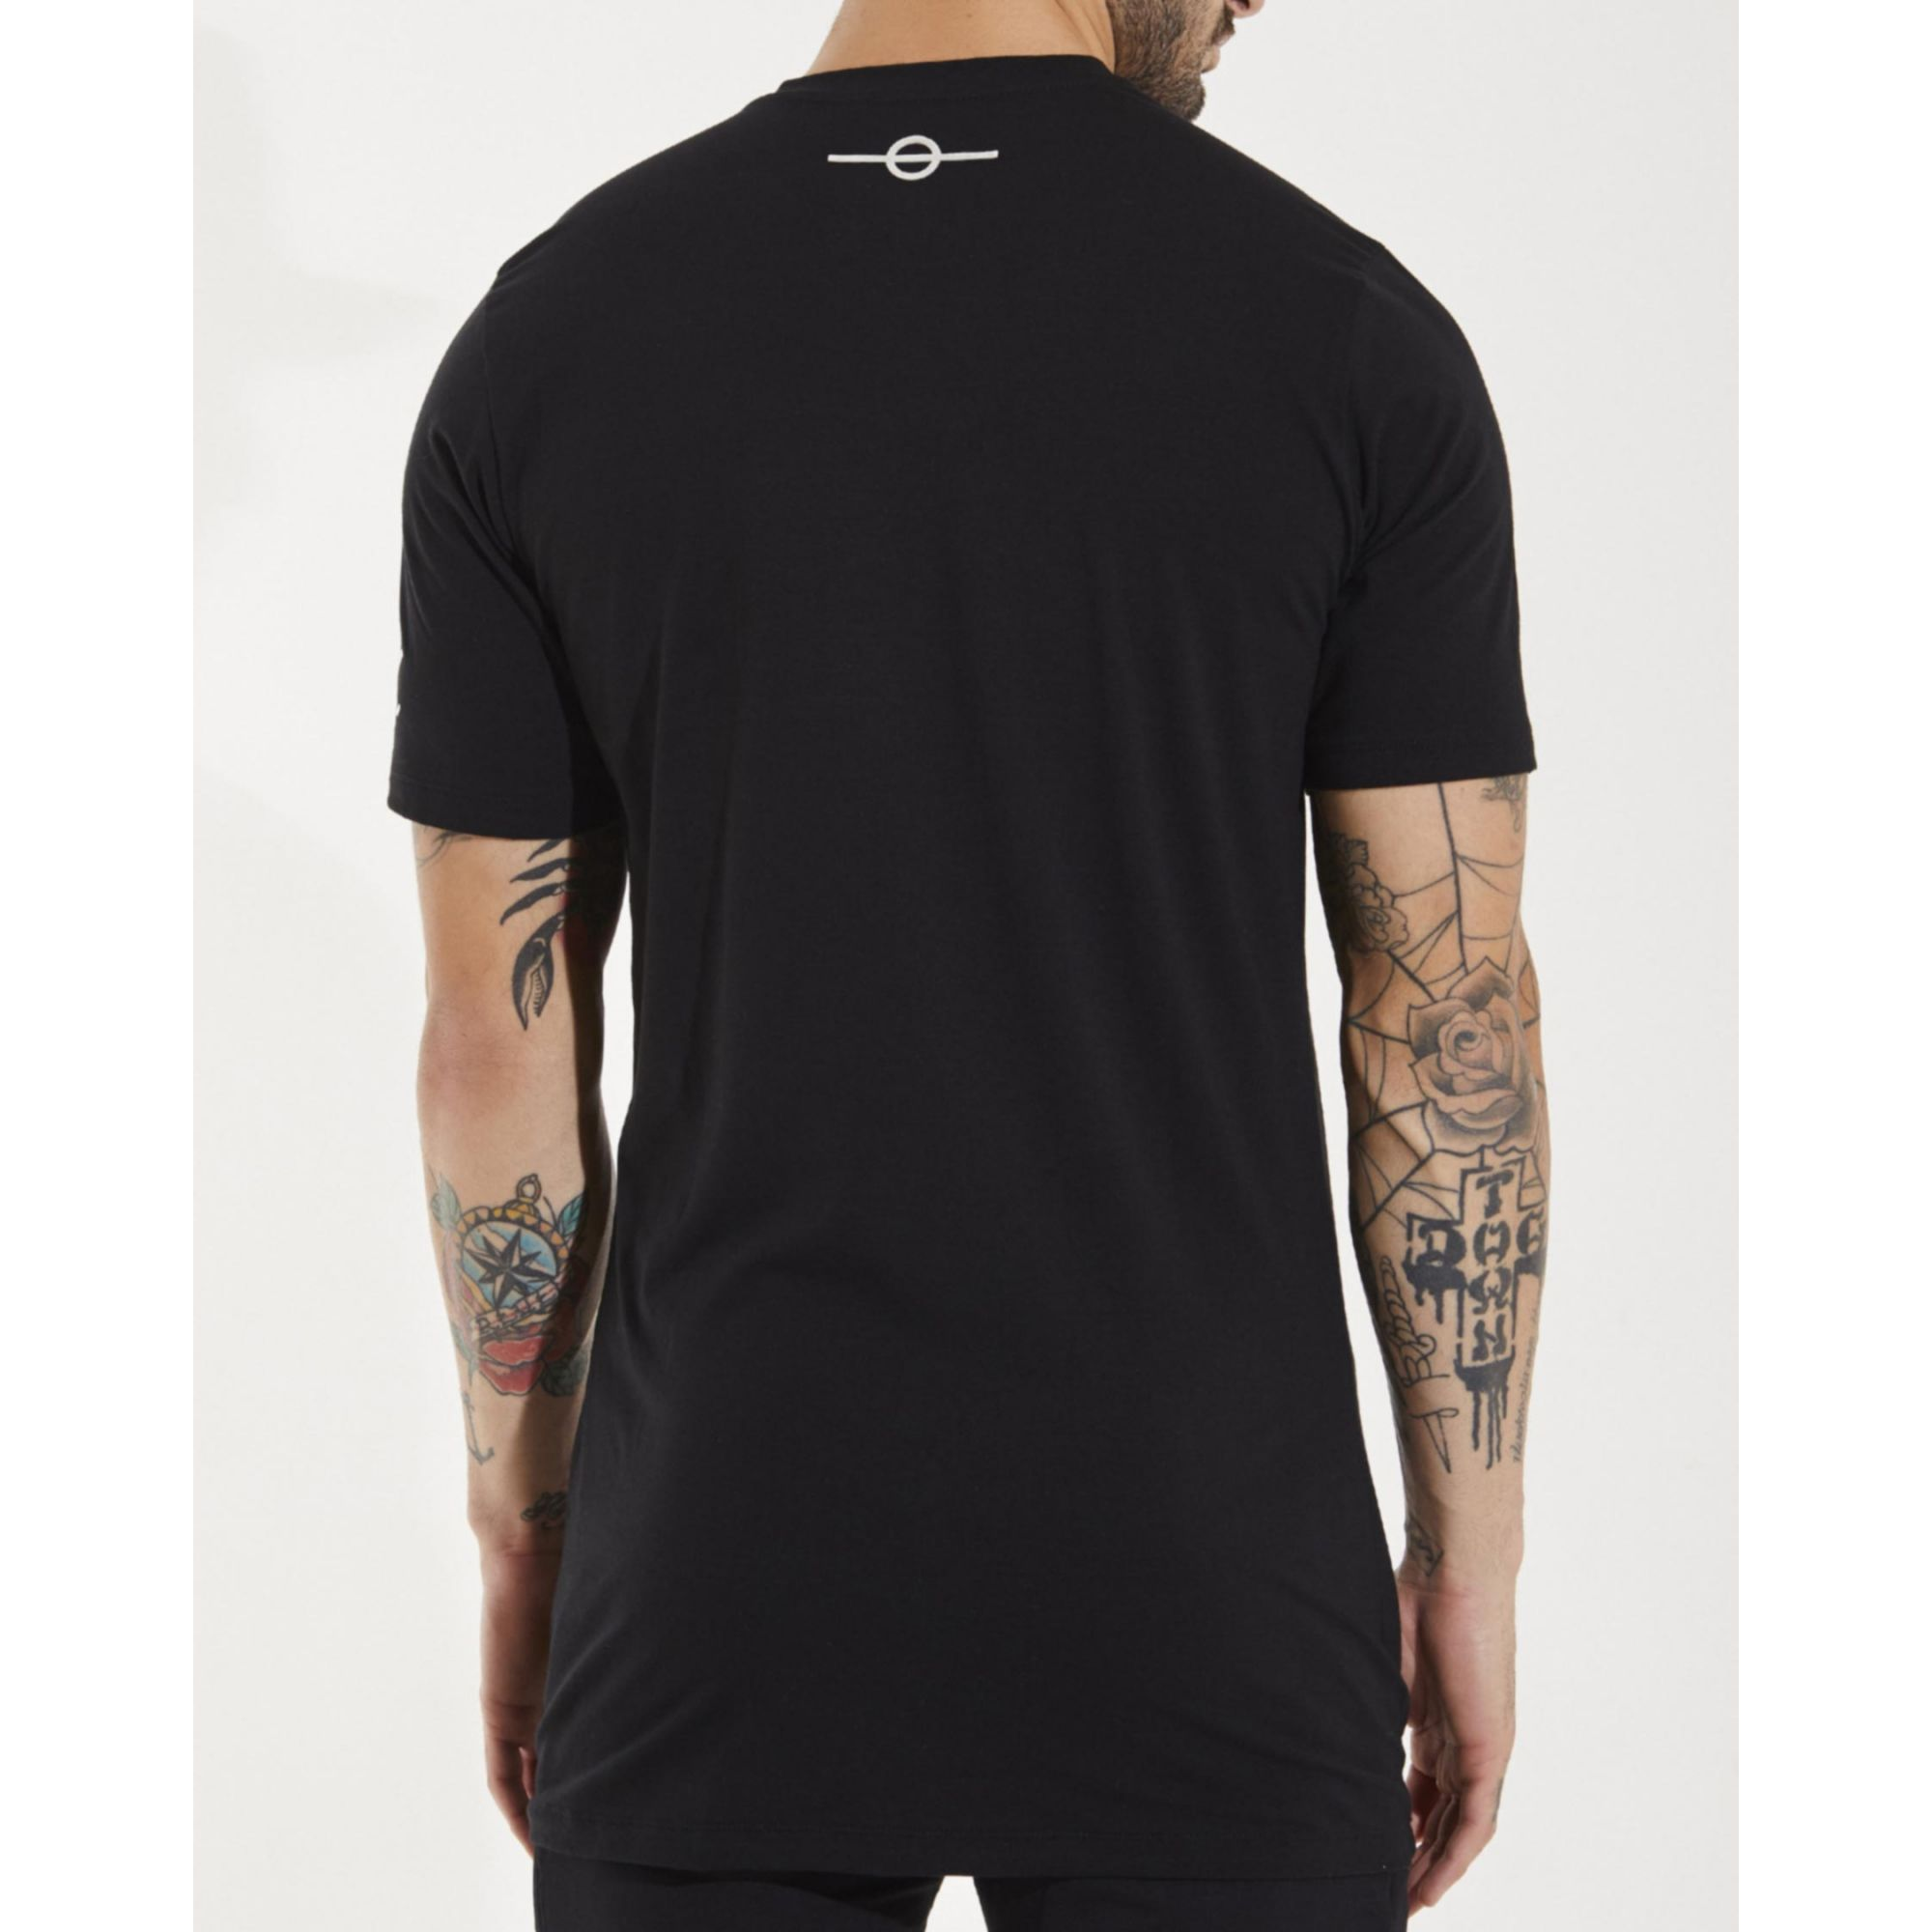 Camiseta Buh Pop Black